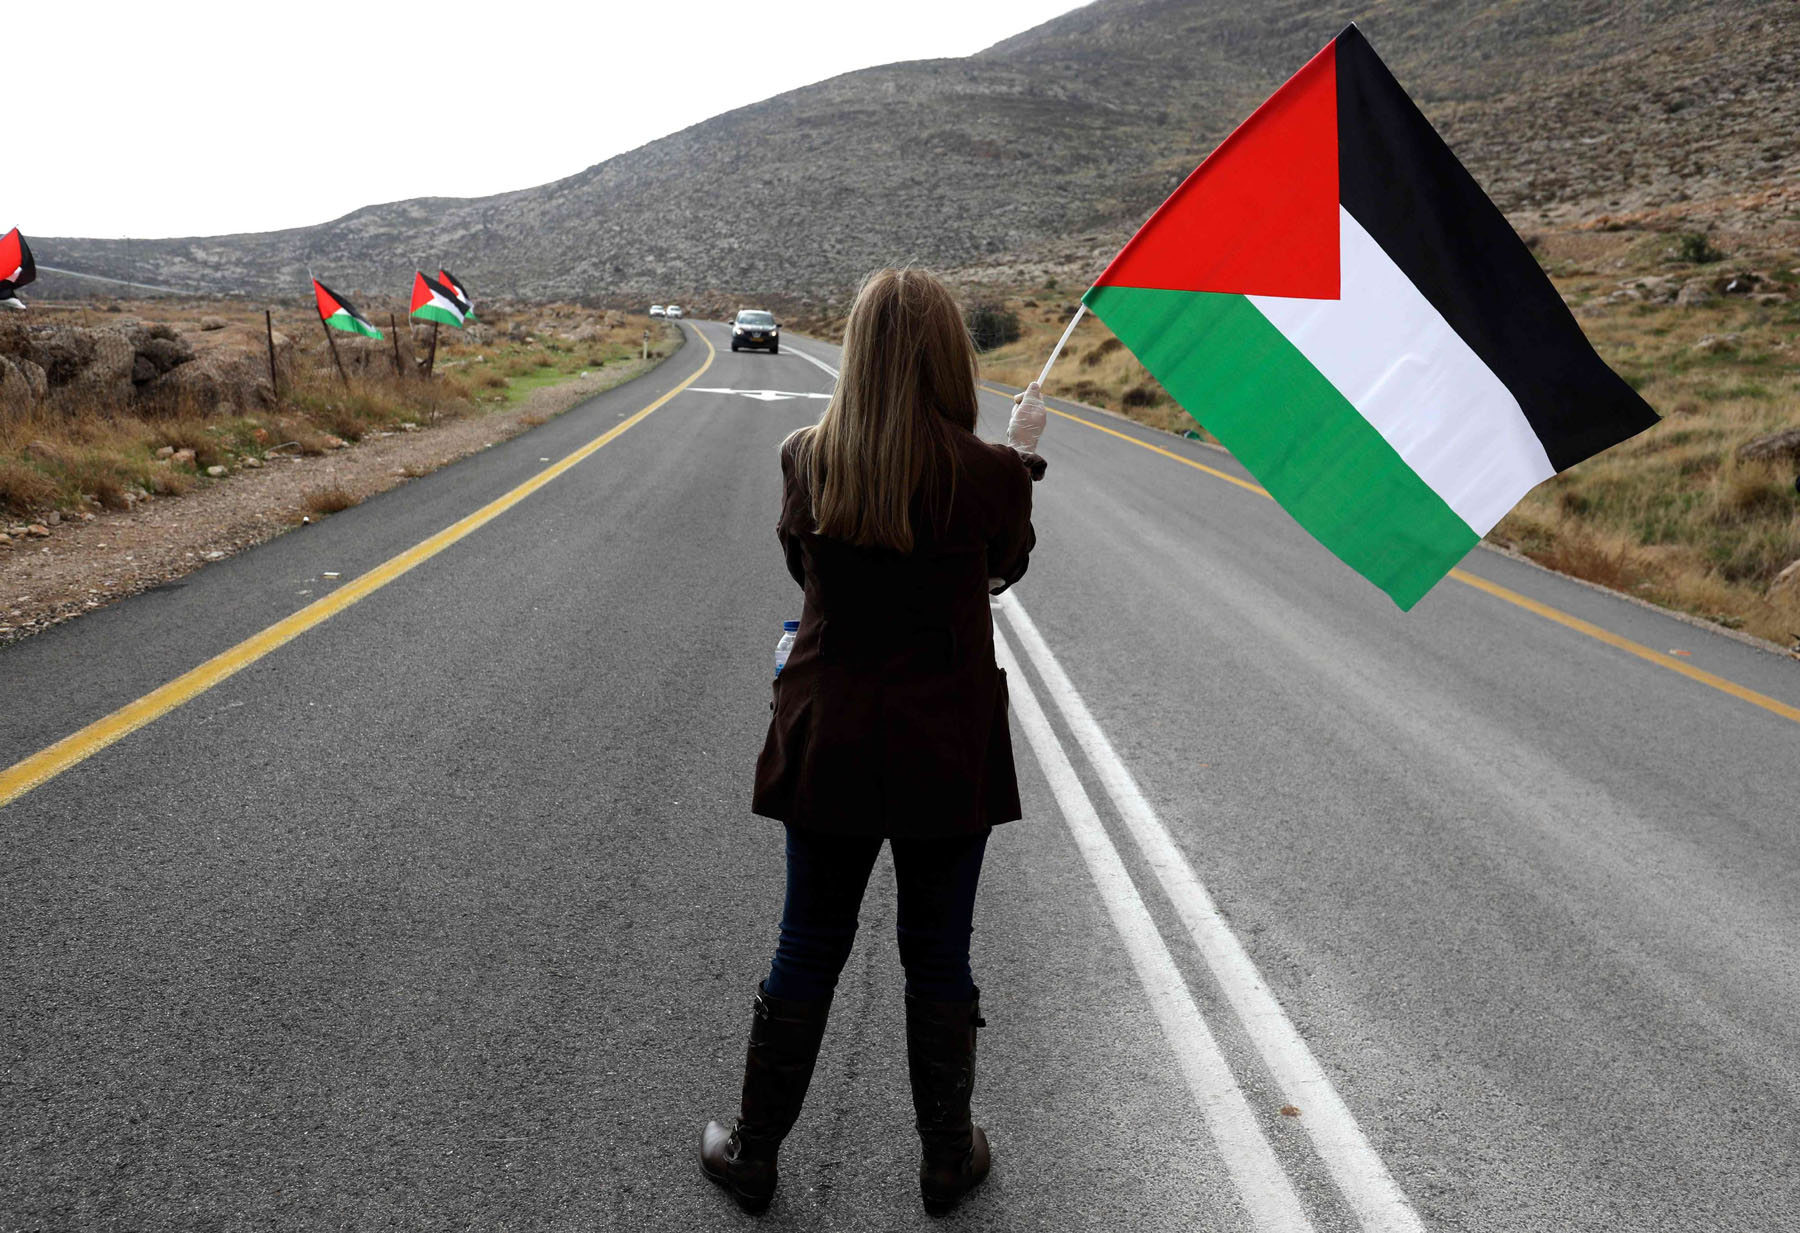 A Palestinian woman stands in middle of a road during a demonstration against Jewish settlements in the village Kafr Malik in the Israeli-occupied West Bank, on November 20, 2020. AFP